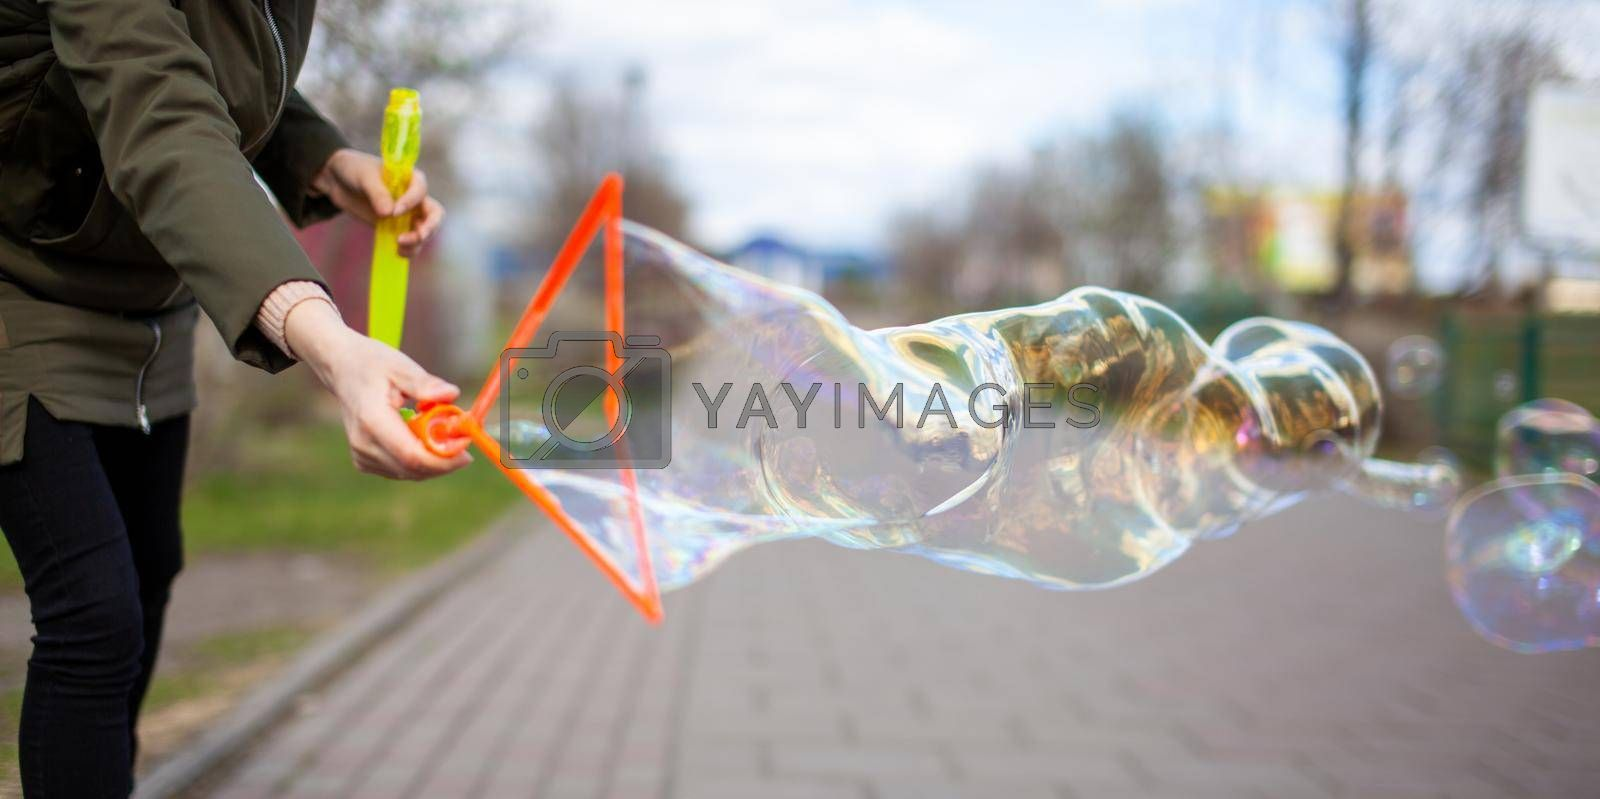 A girl blows soap bubbles in the park for the entertainment of children. Large, colorful soap bubbles in the open air in a public park.